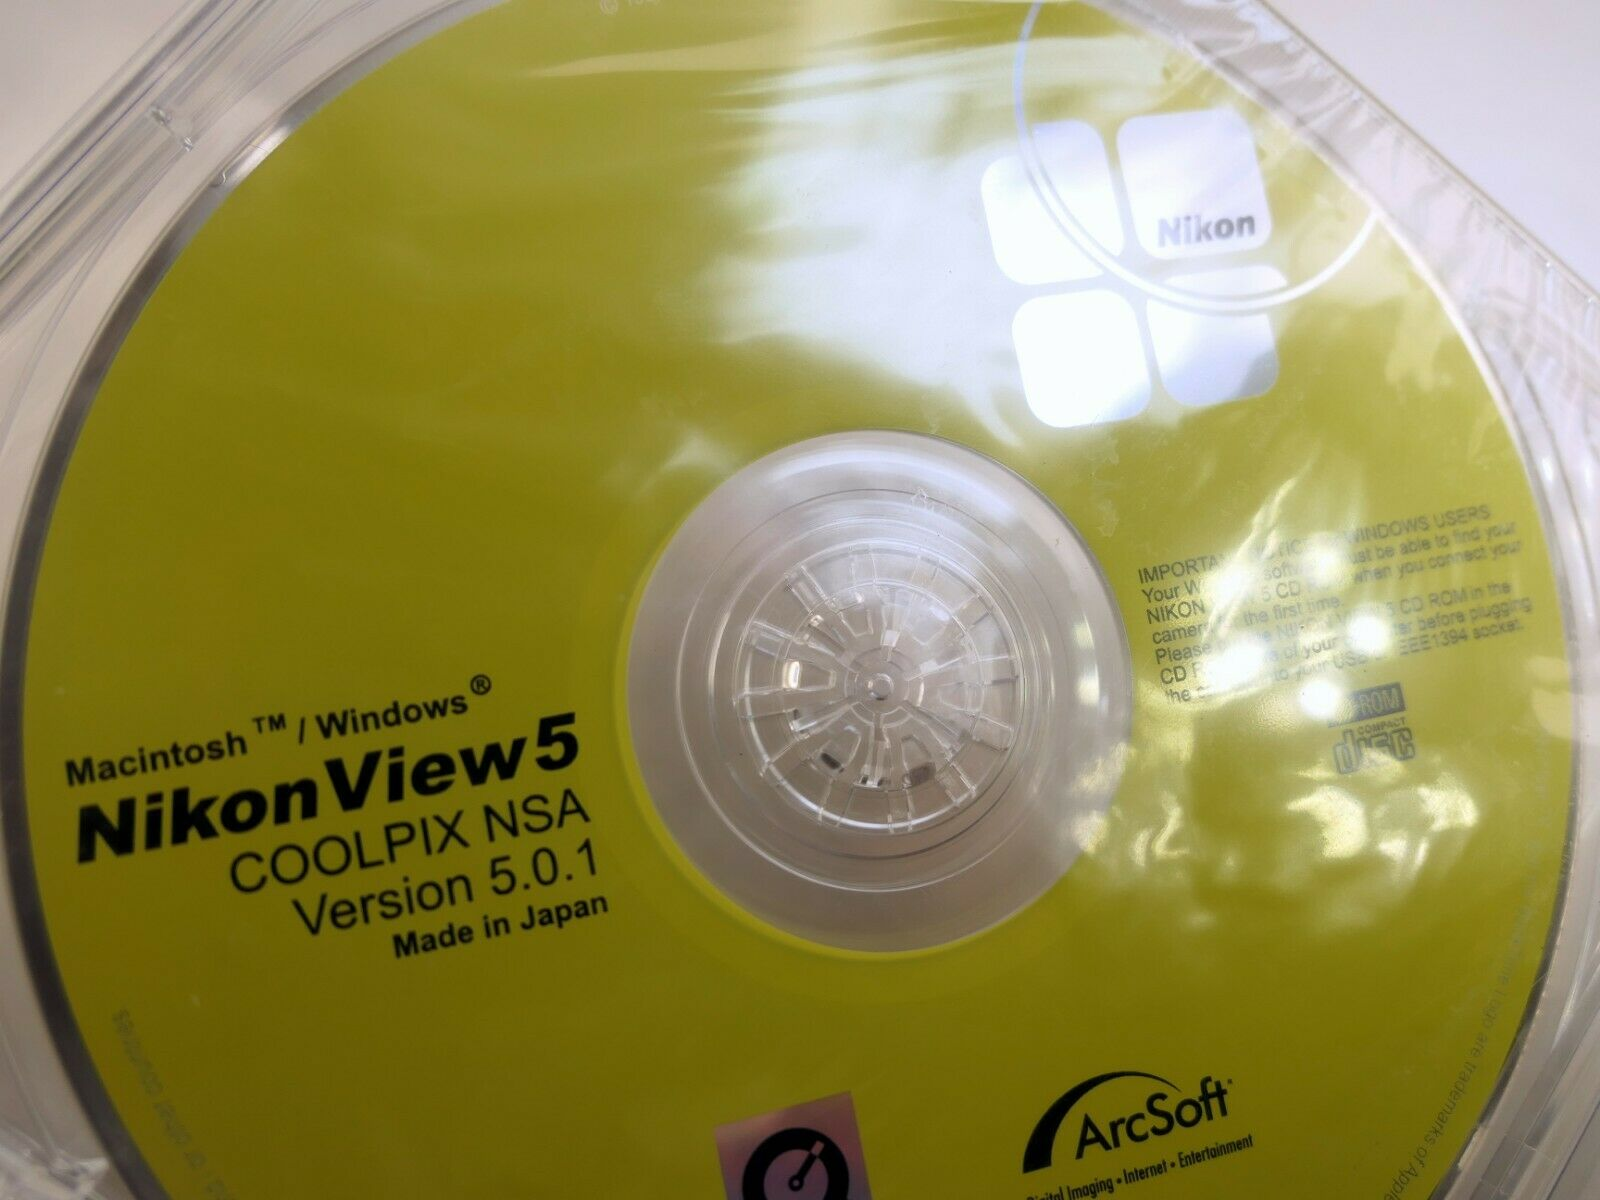 Nikon Coolpix View 5 WINDOWS CD software disc for digital cameras